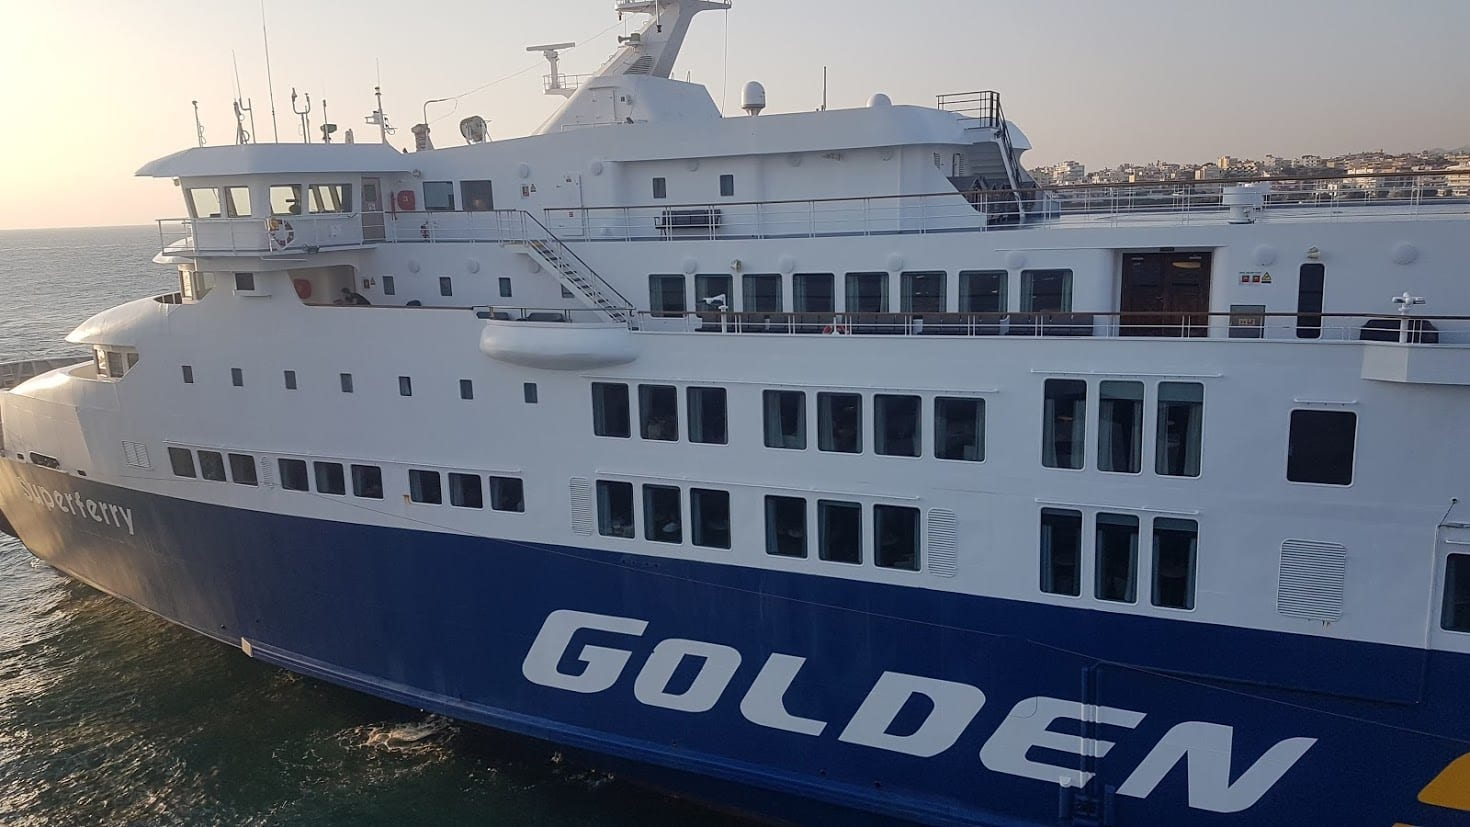 Golden star ferries in Greece